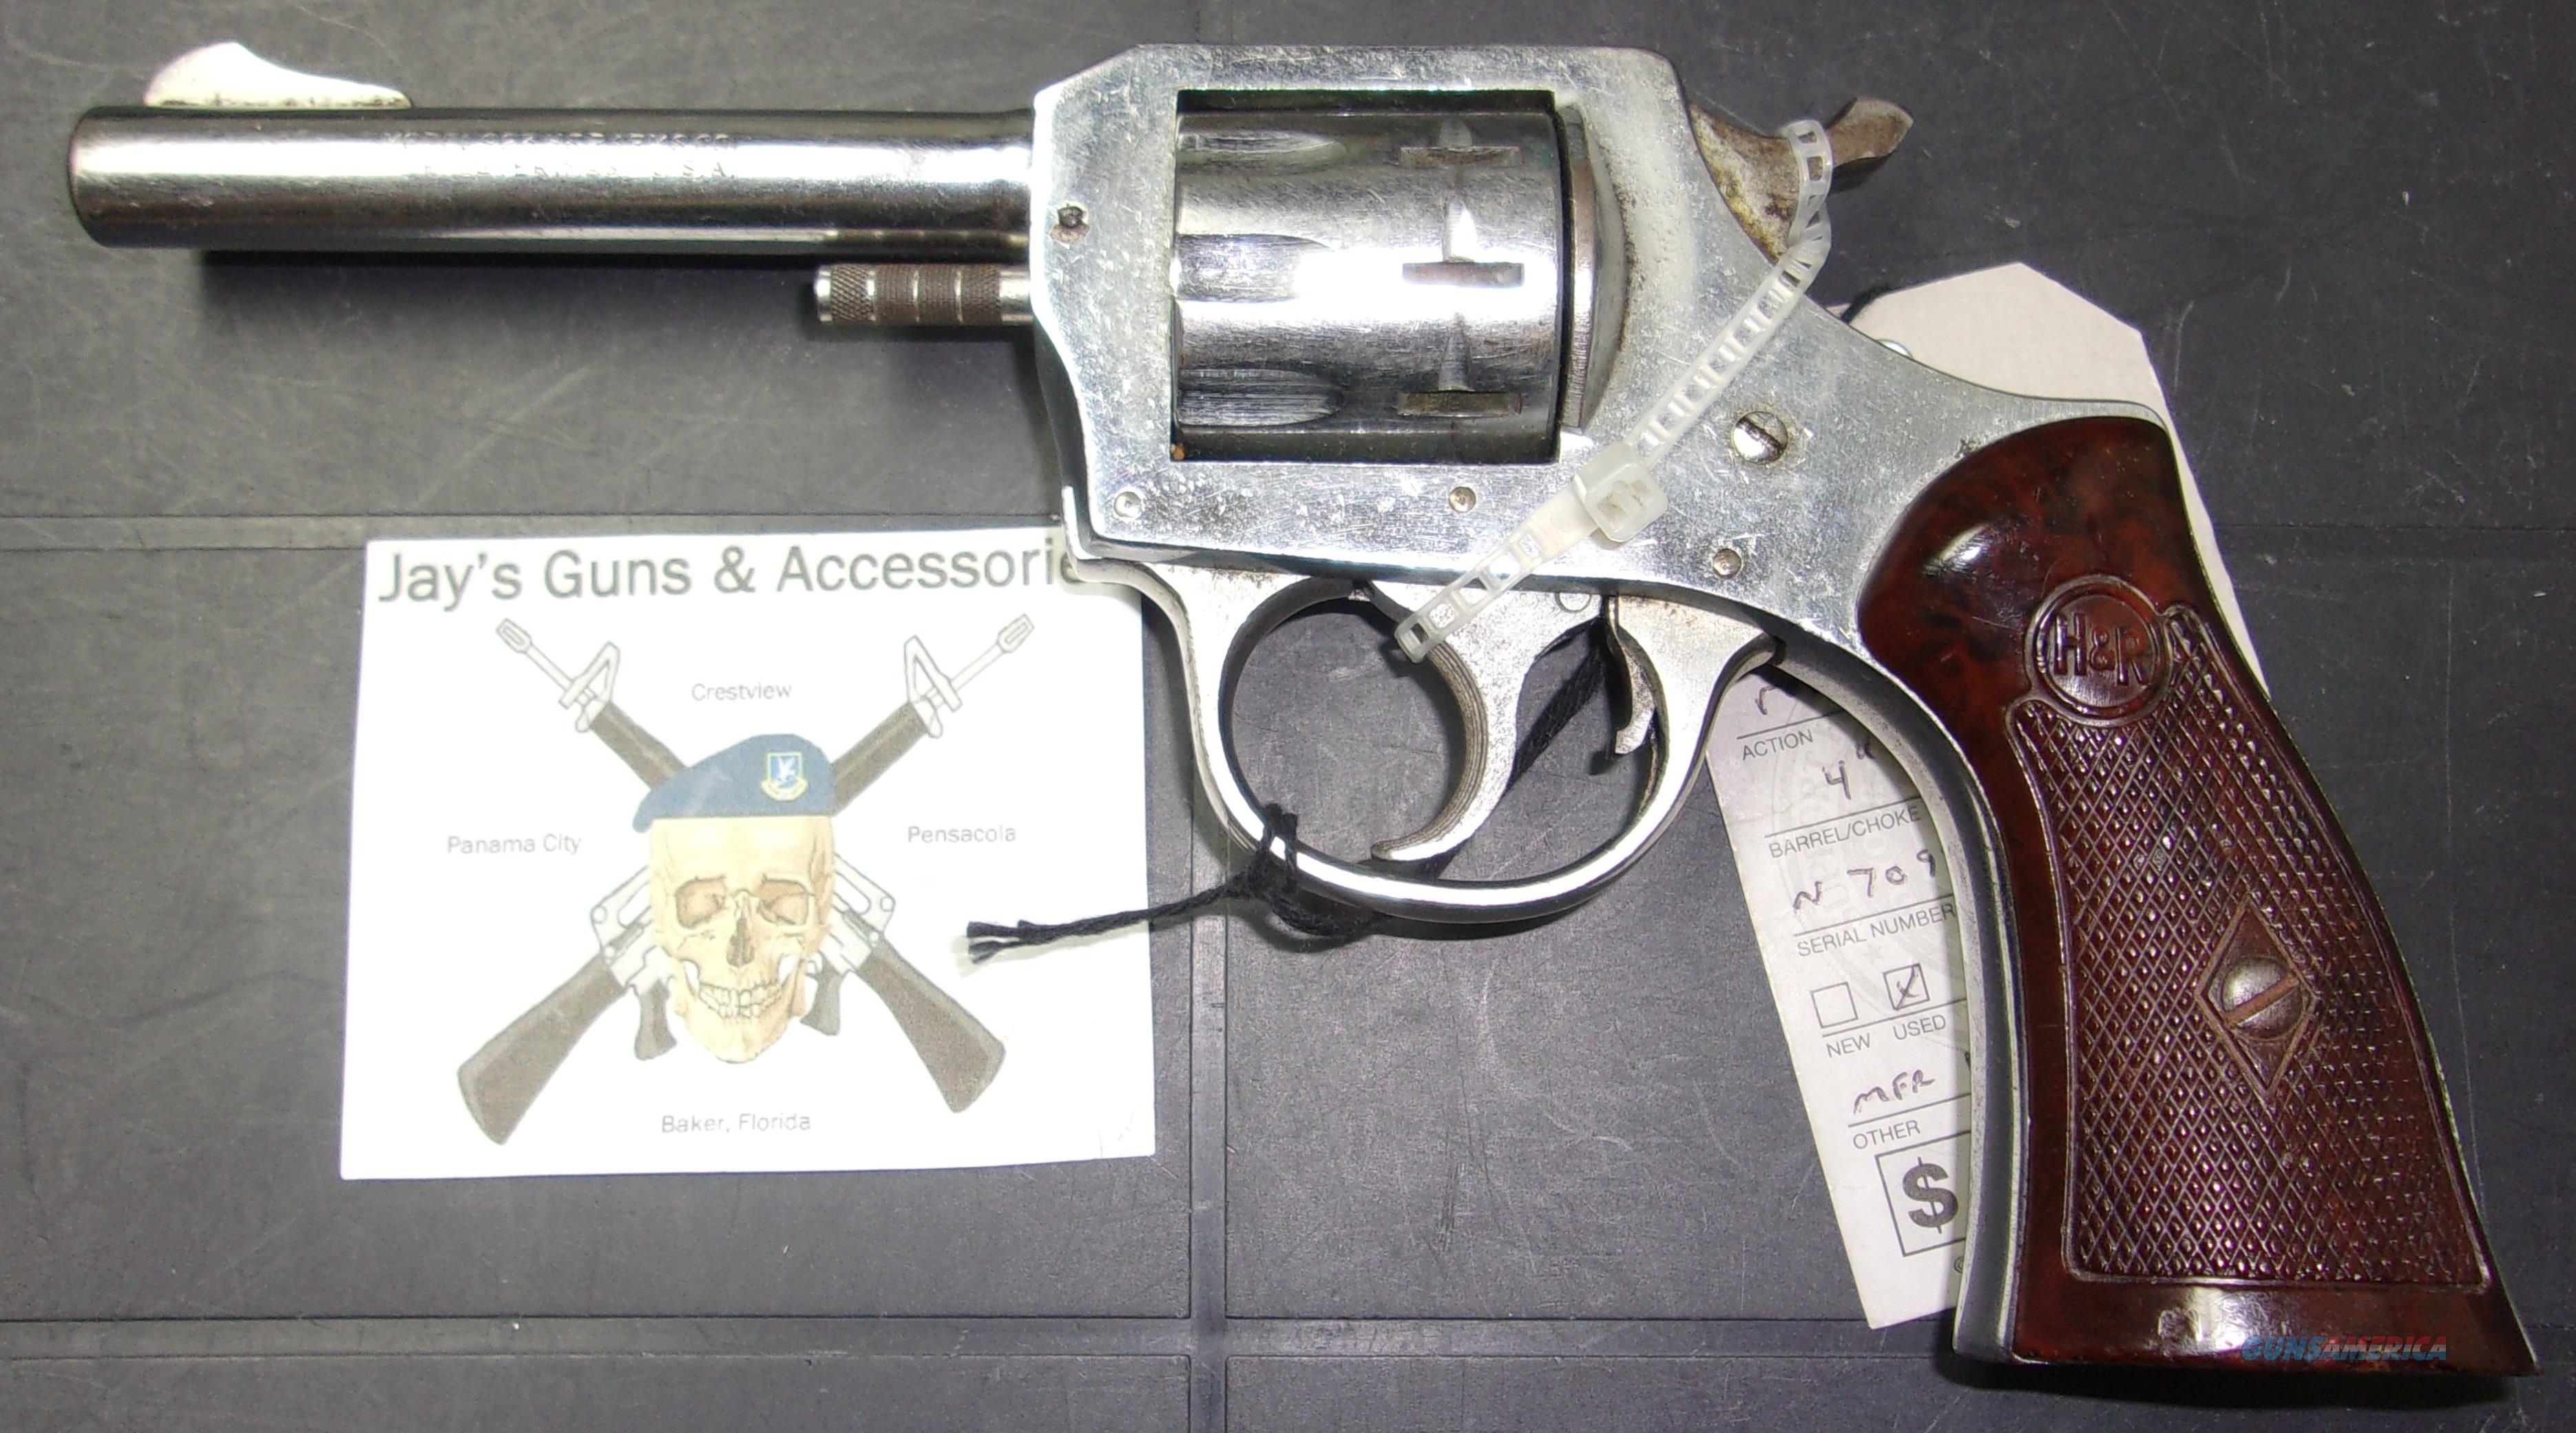 H&R Arms Inc 923  Guns > Pistols > Harrington & Richardson Pistols